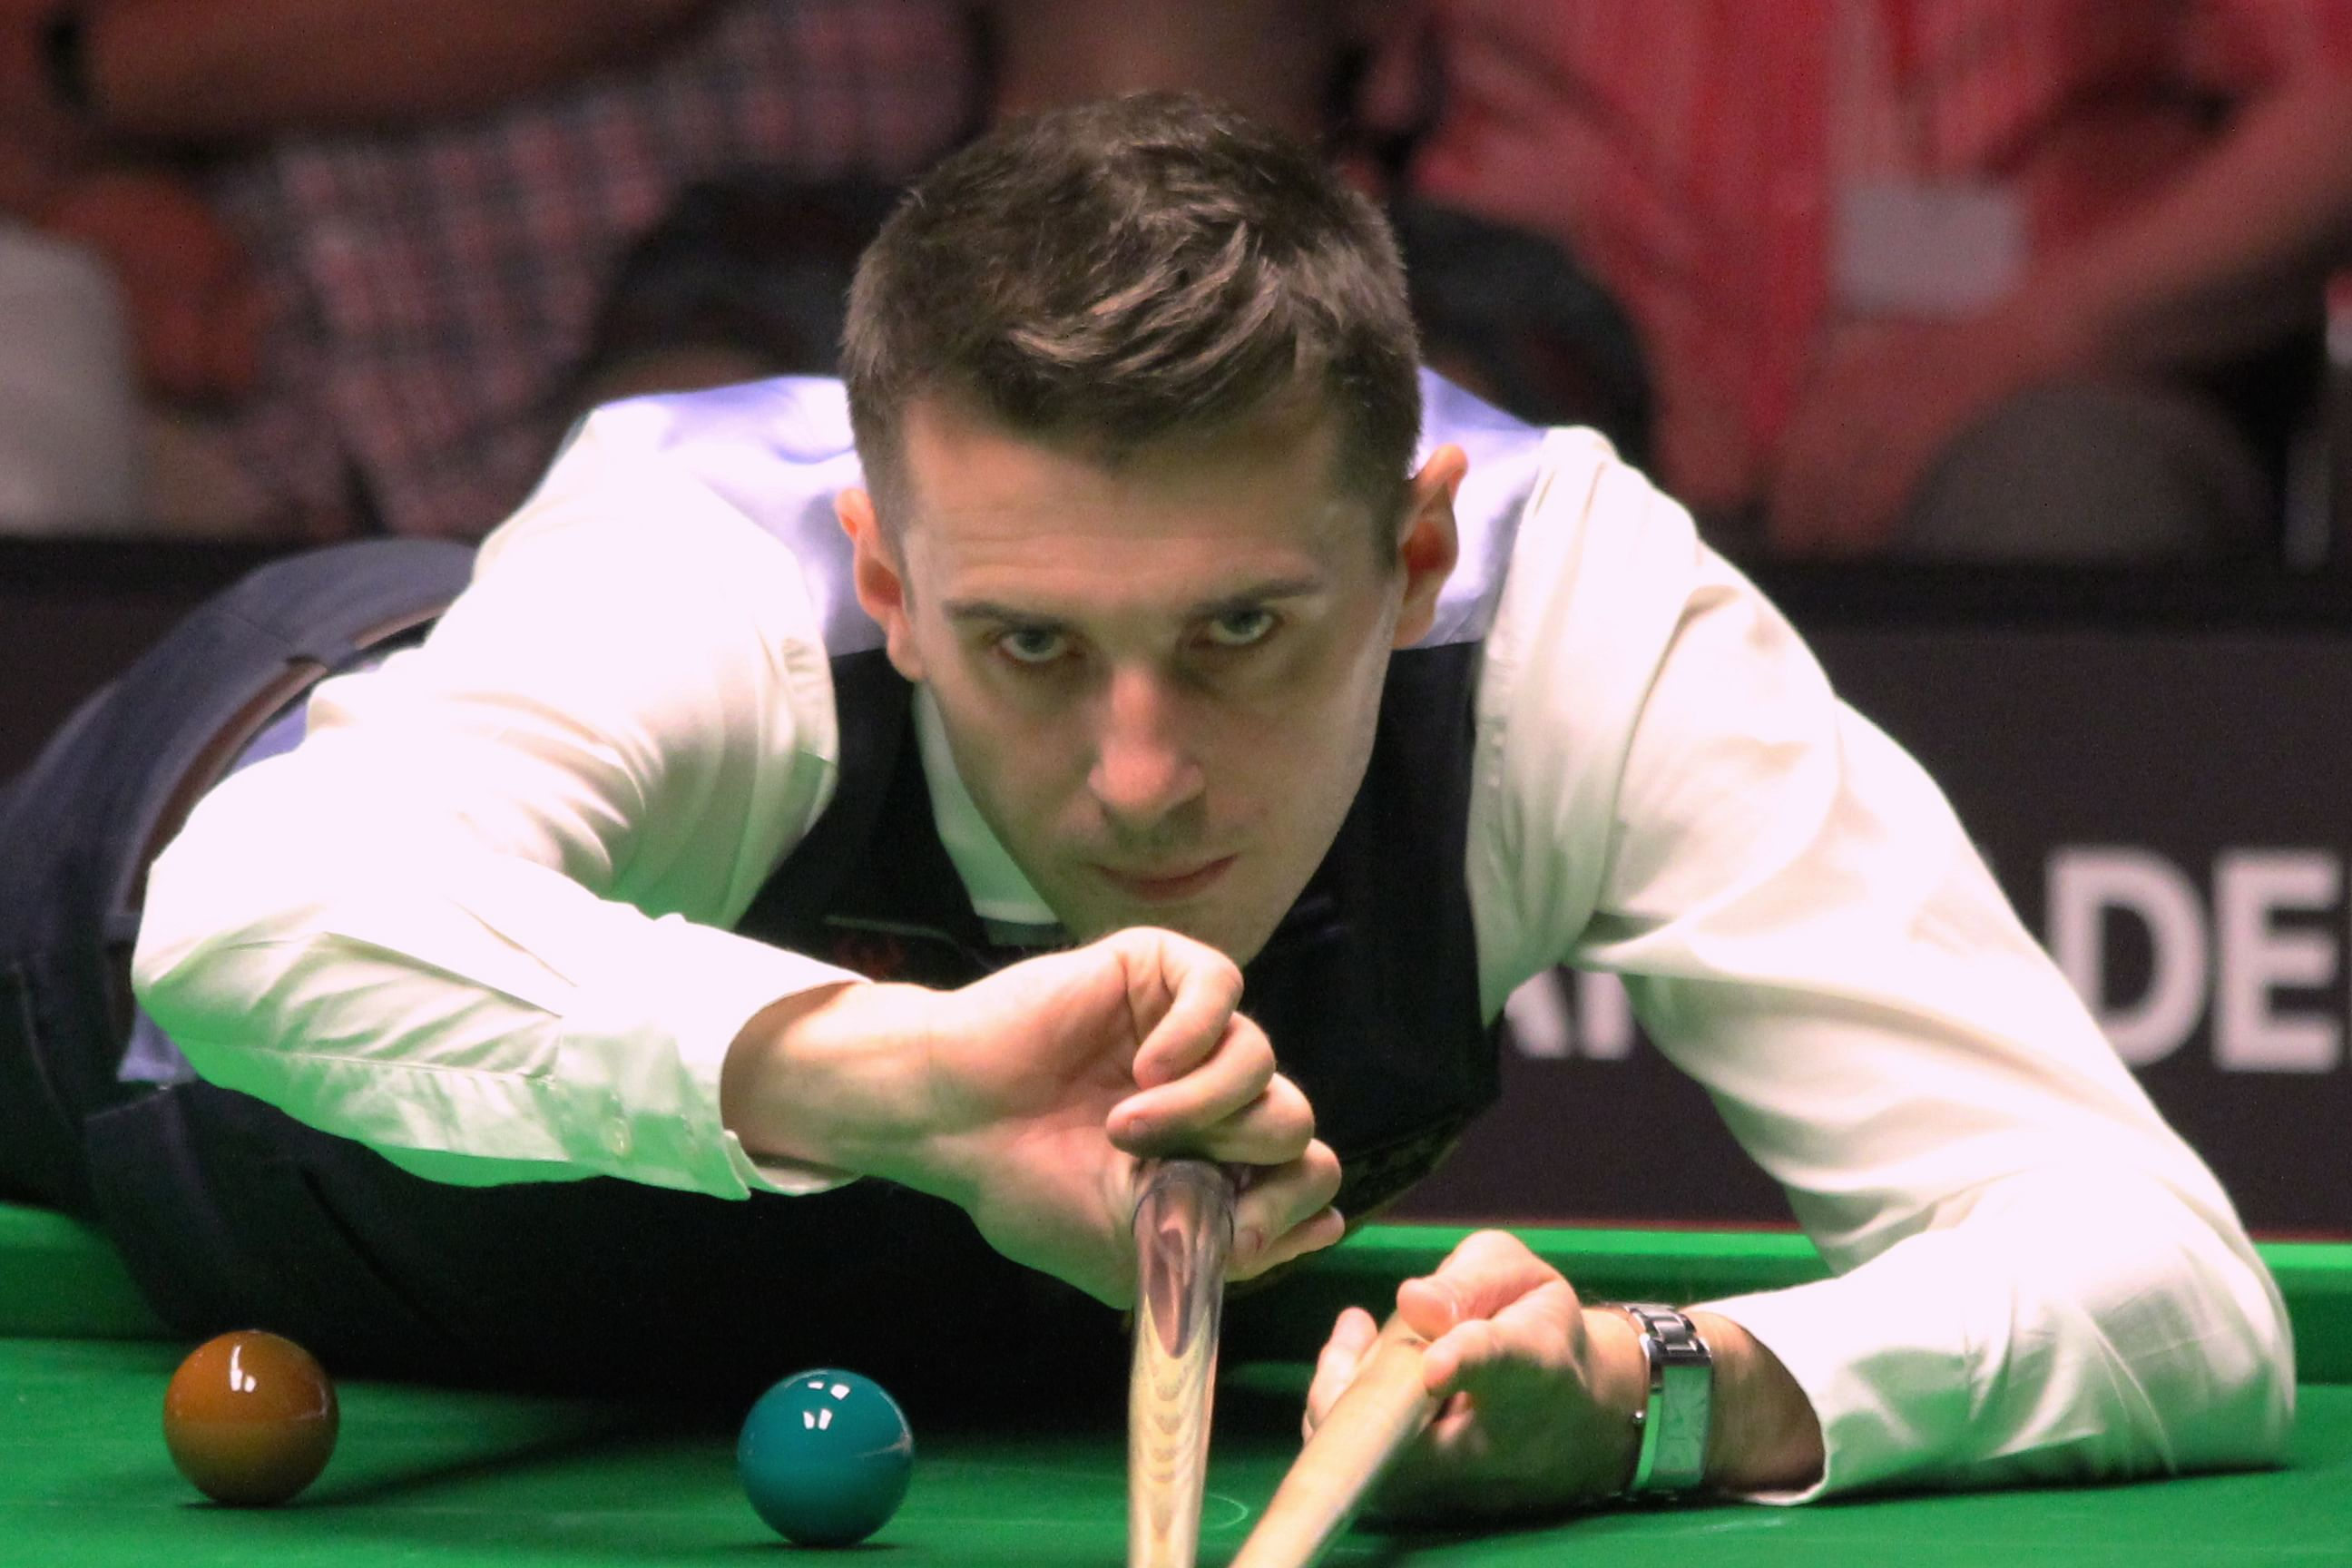 Pain-plagued Mark Selby reaches China Open snooker quarters